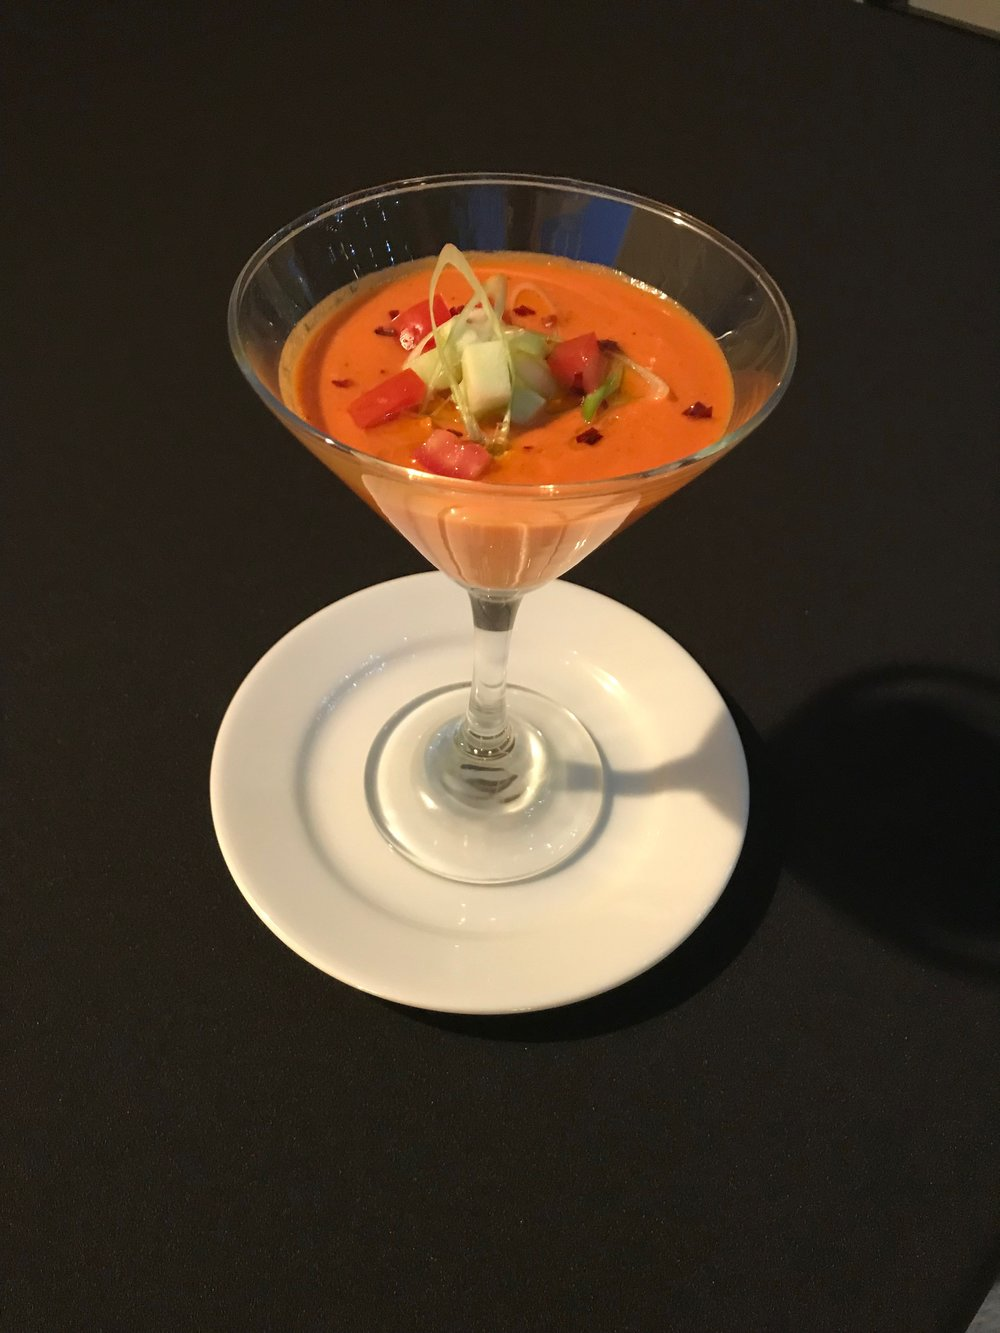 """Not Your Traditional"" Gazpacho  - Roasted tomato gazpacho with a drizzle of Spanish olive oil"